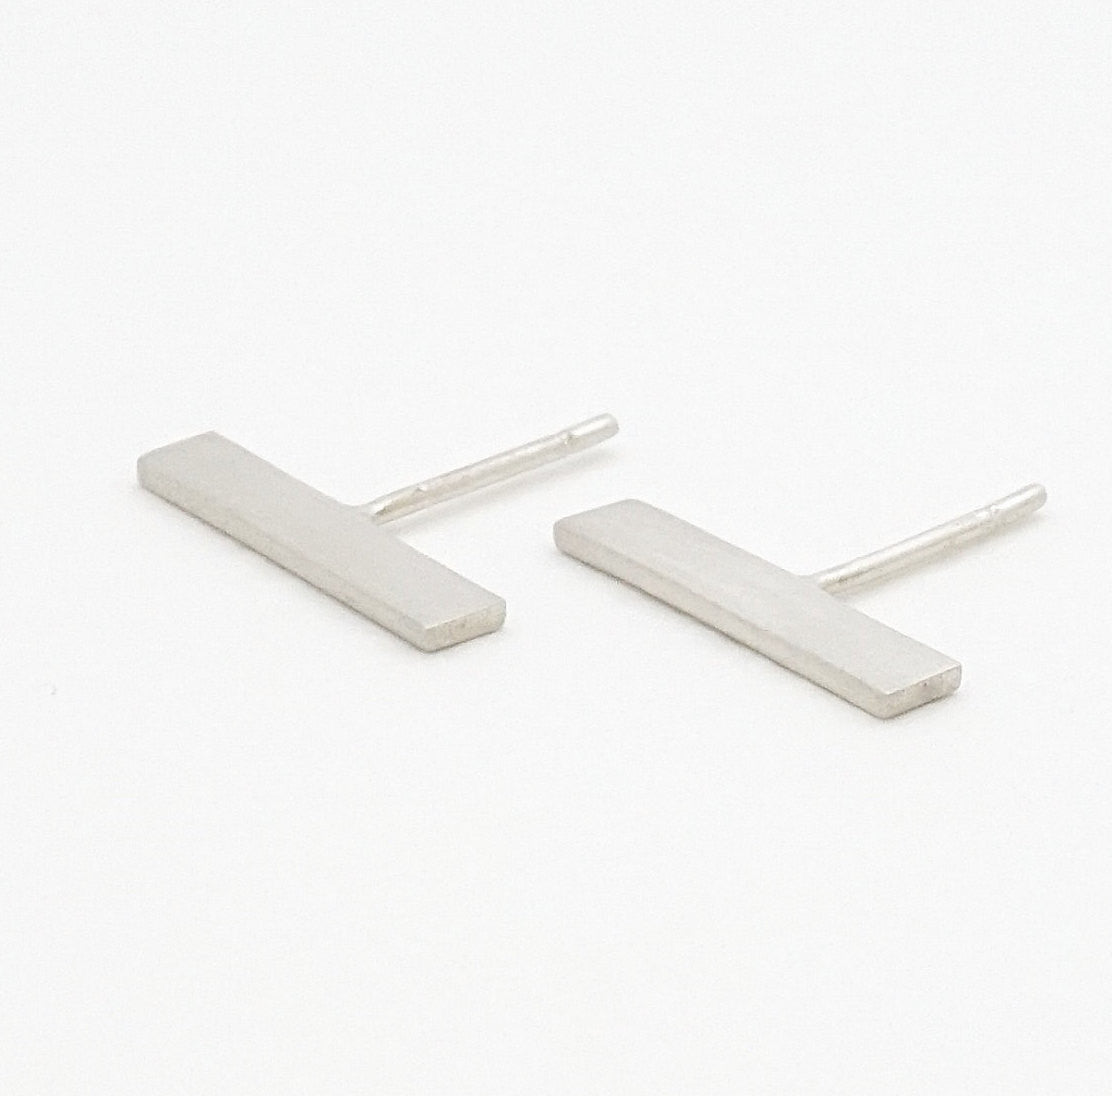 True Stand-outs - Hand-Made Flat Rectangular Bar Stud Earrings, in Two Sizes of Brass or Sterling Silver - 0184 - Virginia Wynne Designs